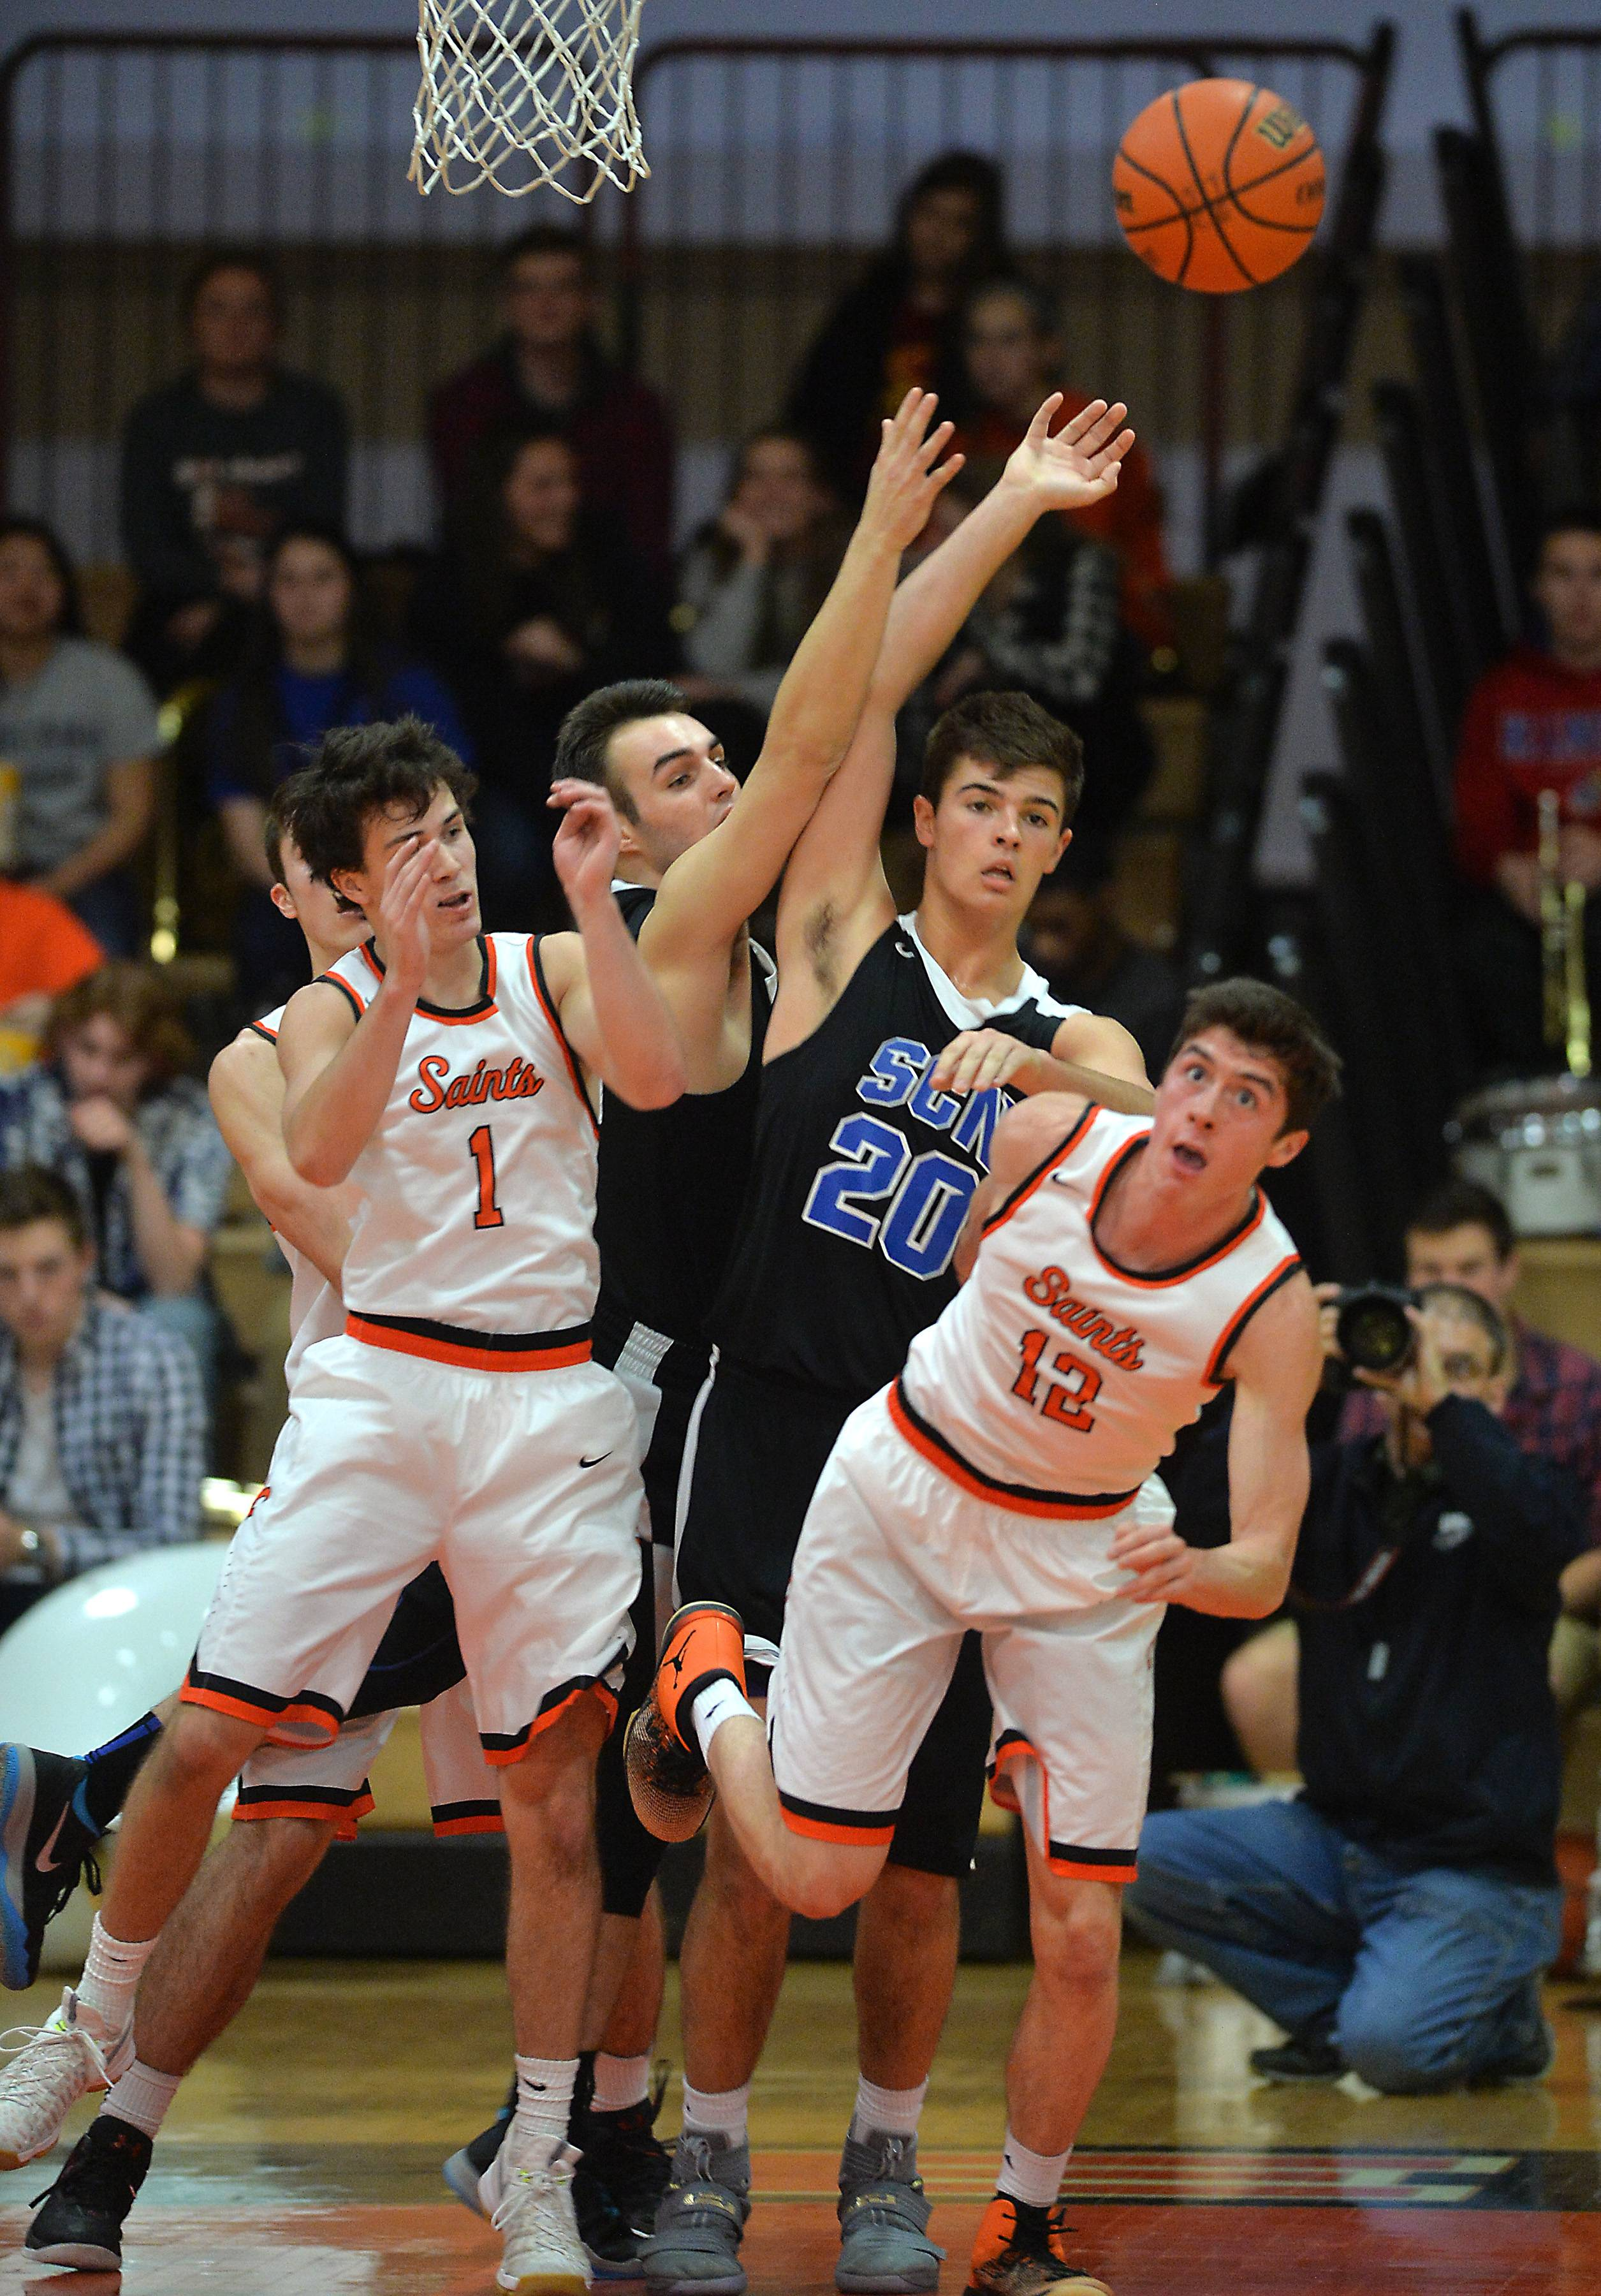 St. Charles East's Alec Champine (1) and Nate Ortiz (12) battle St. Charles North's Cade Calaghan for a rebound in the first quarter Saturday.